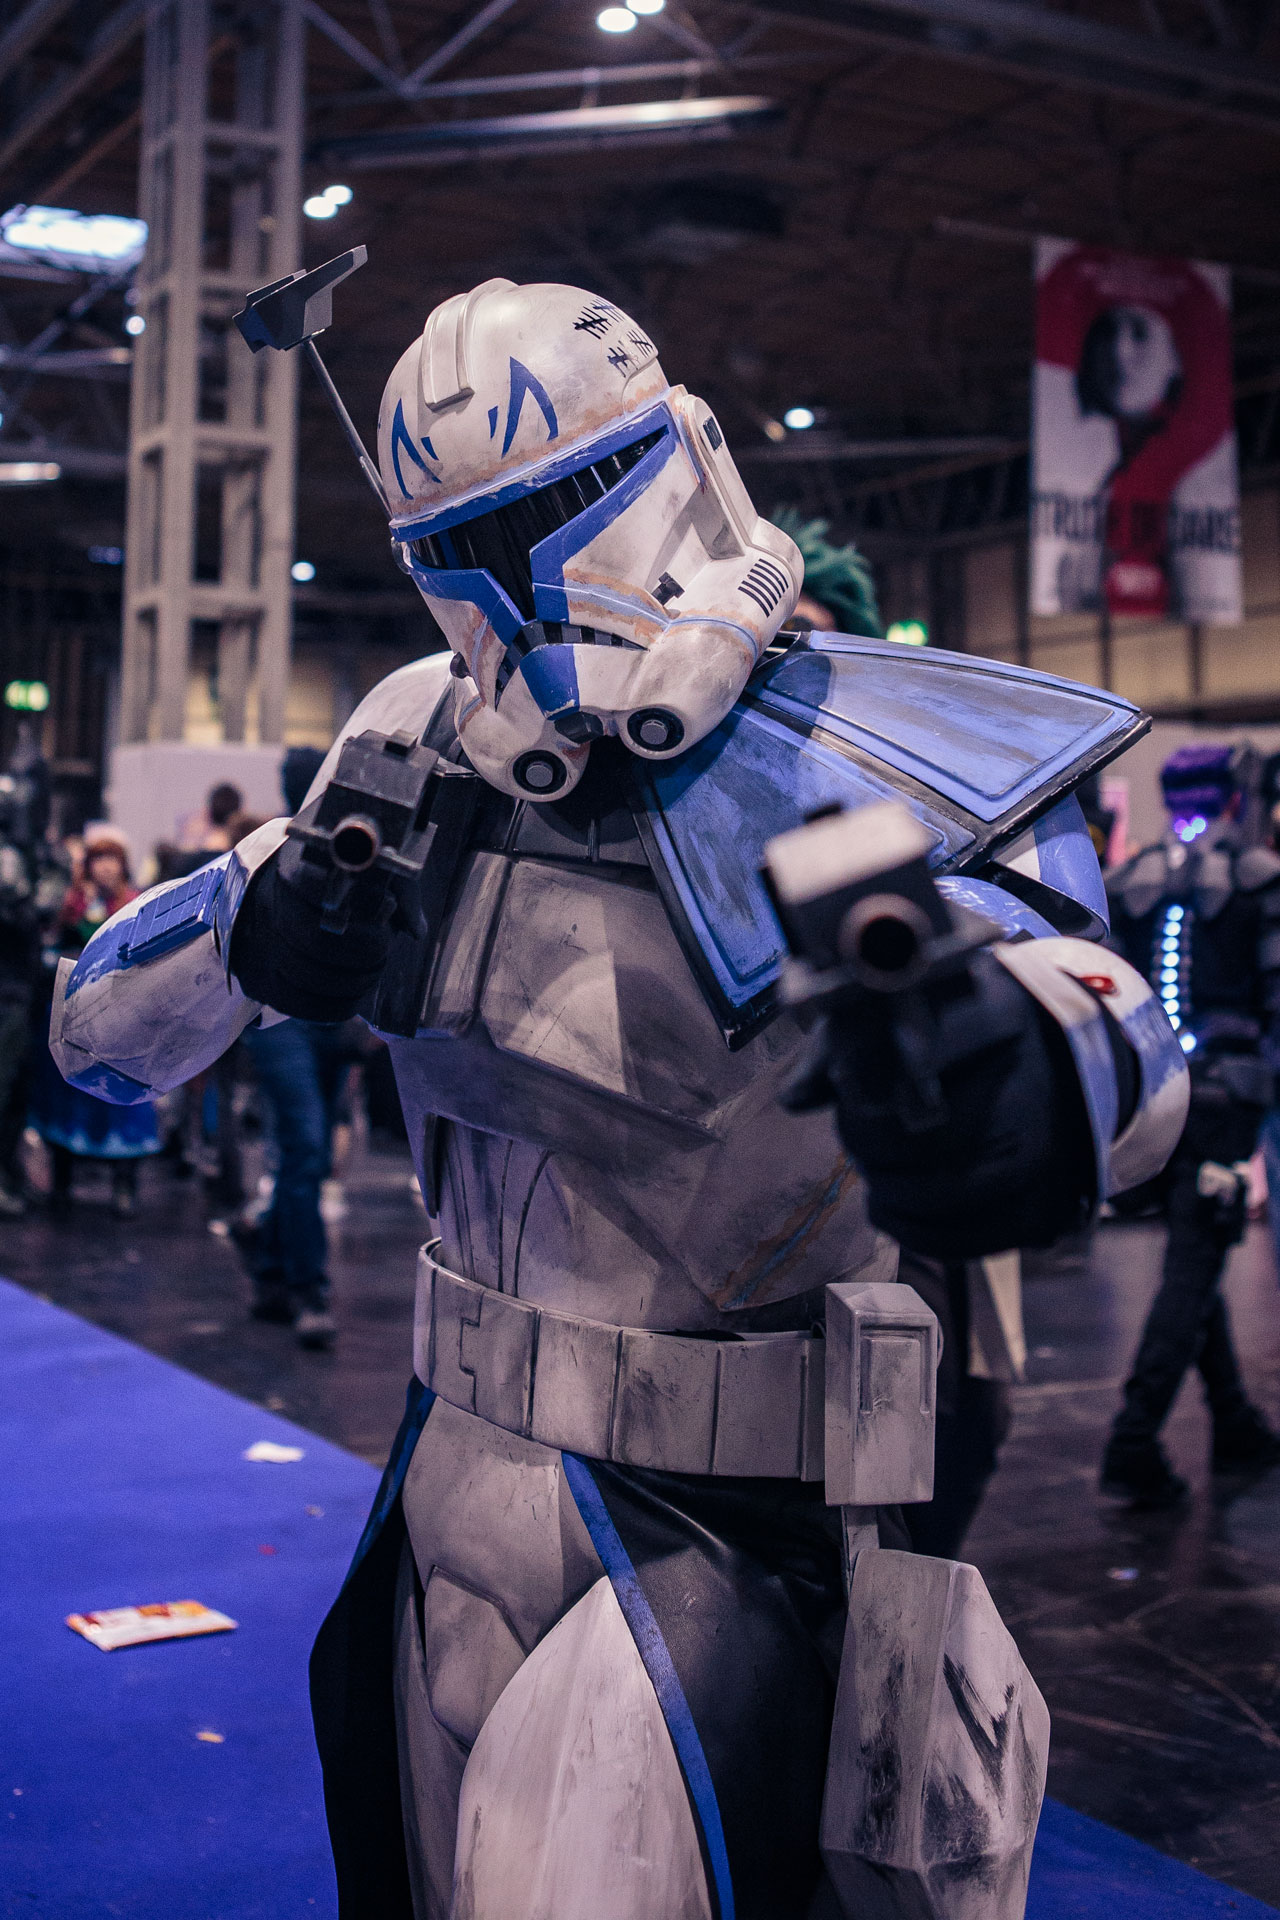 cosplay from mcm birmingham comic con  u2013 march 2018